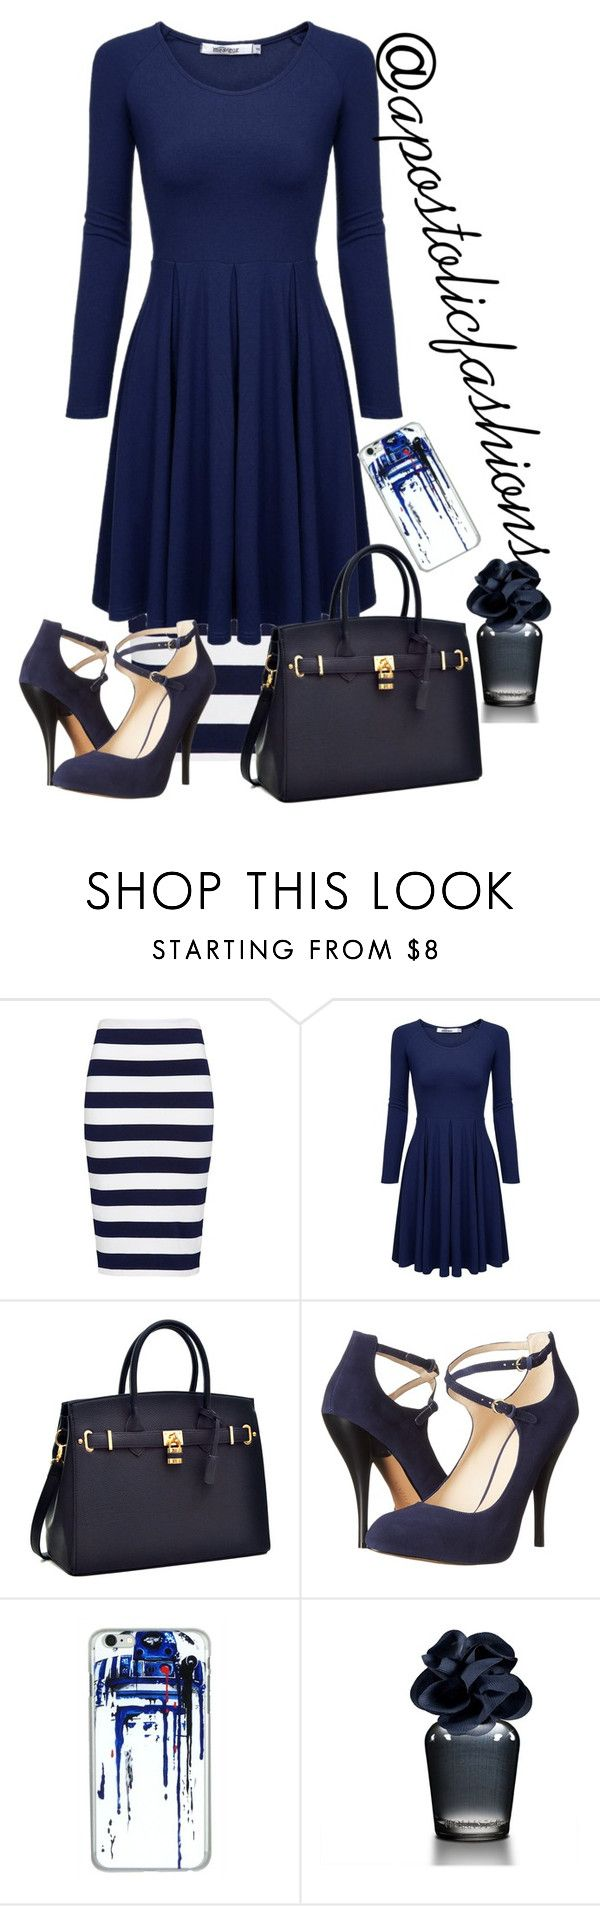 """Apostolic Fashions #1439"" by apostolicfashions on Polyvore featuring French Connection, Nine West, Hollister Co., modestlykay and modestlywhit"